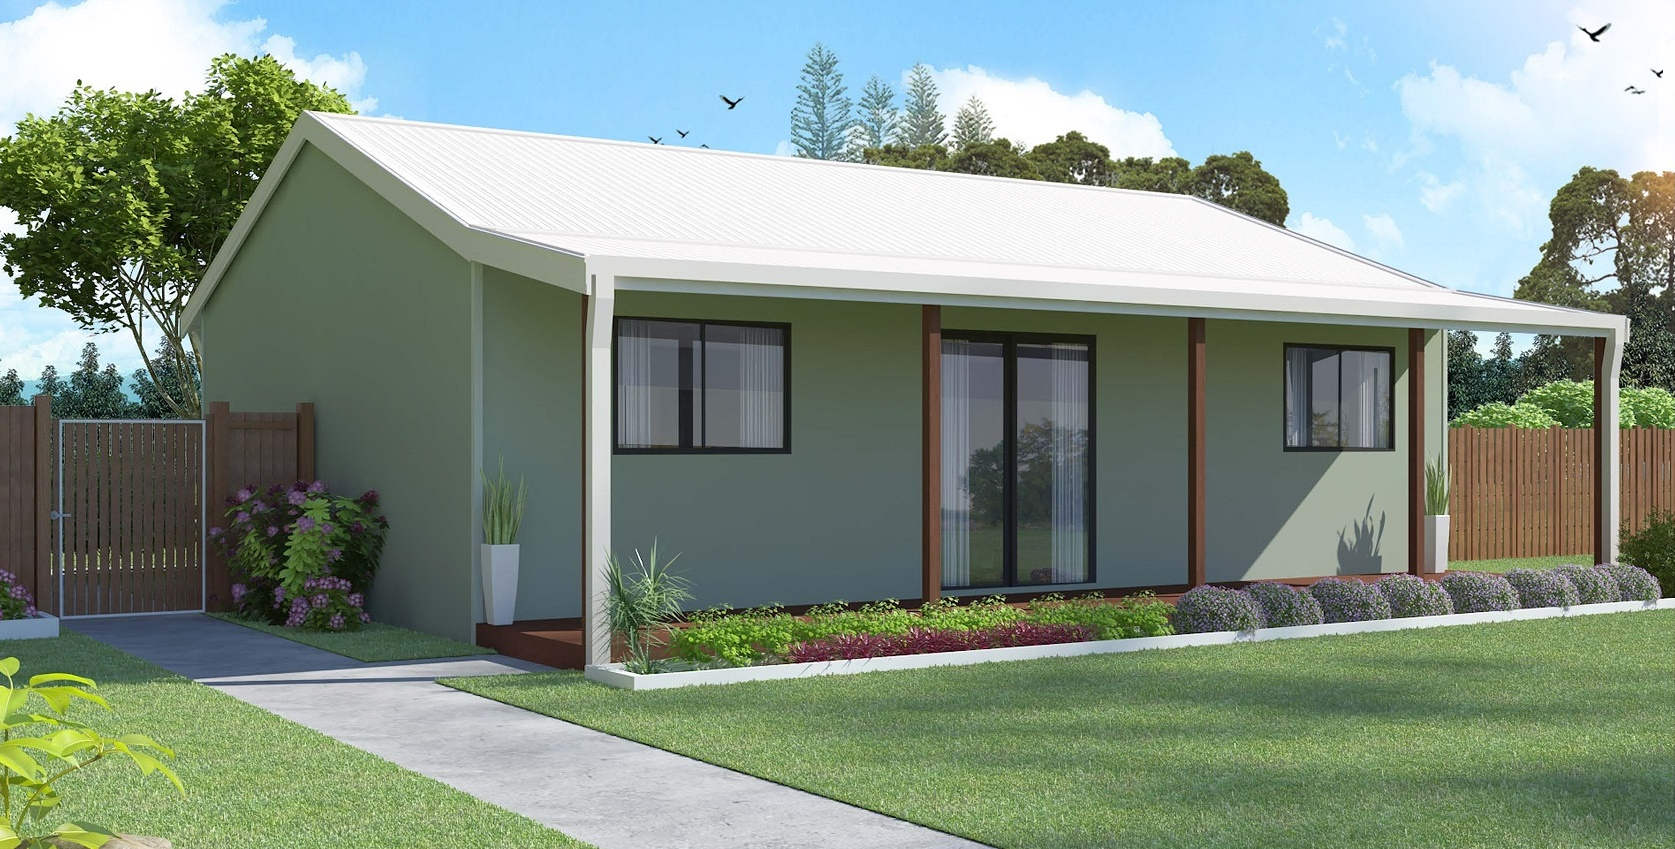 2 Bedroom  Wholesale Homes and Sheds